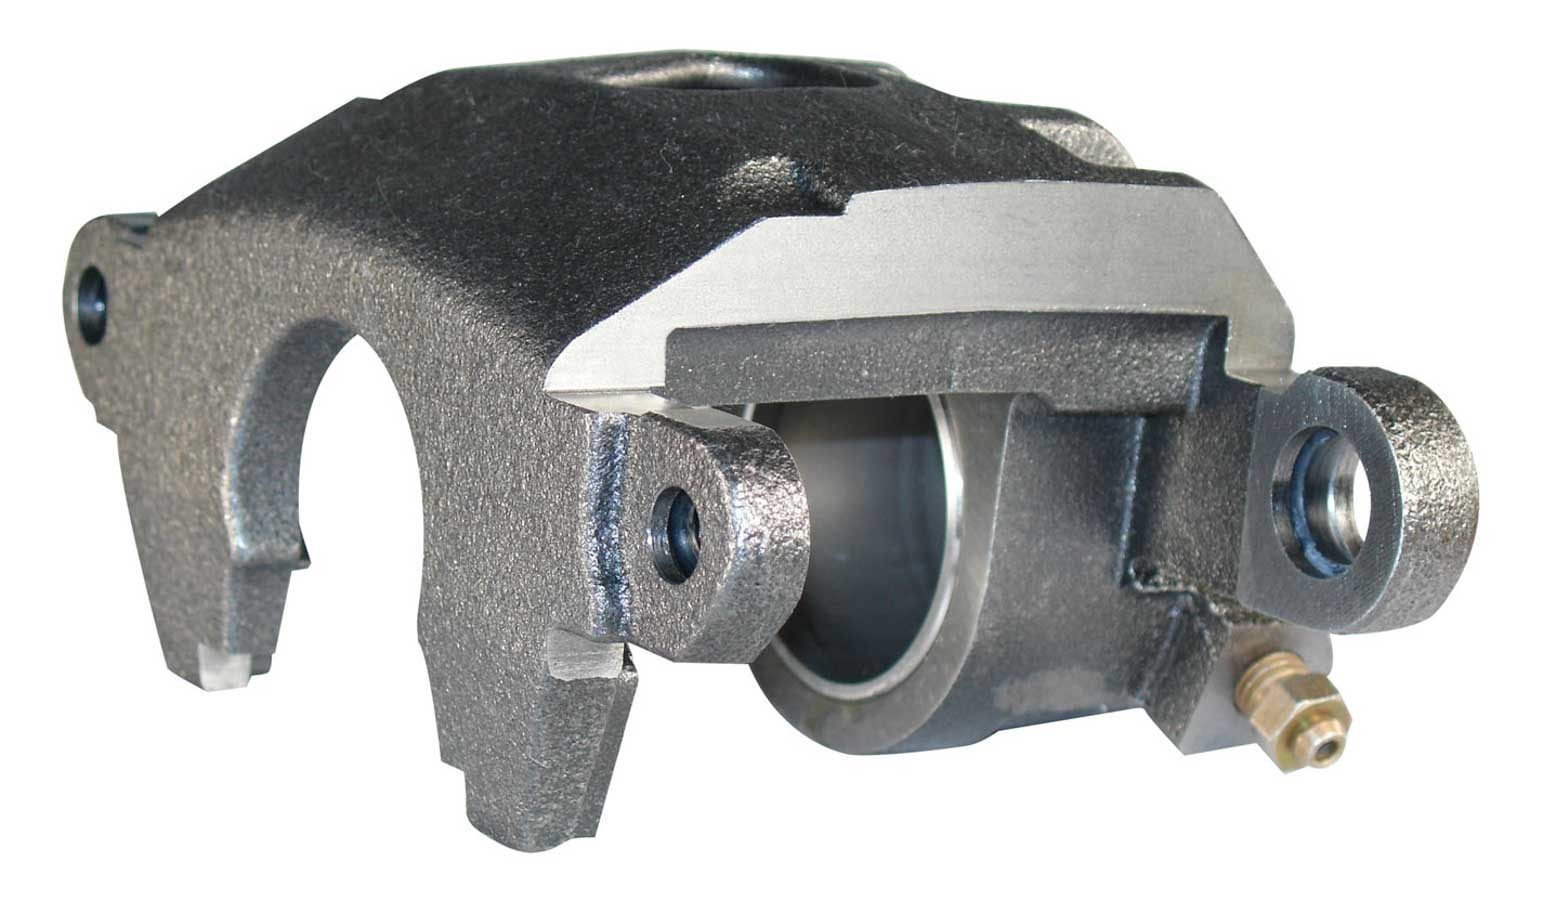 Wilwood 120-9333 Brake Caliper, GM Metric, 1 Piston, Iron, Natural, 11.750 in OD x 1.040 in Thick Rotor, 5.46 in Floating Mount, Each